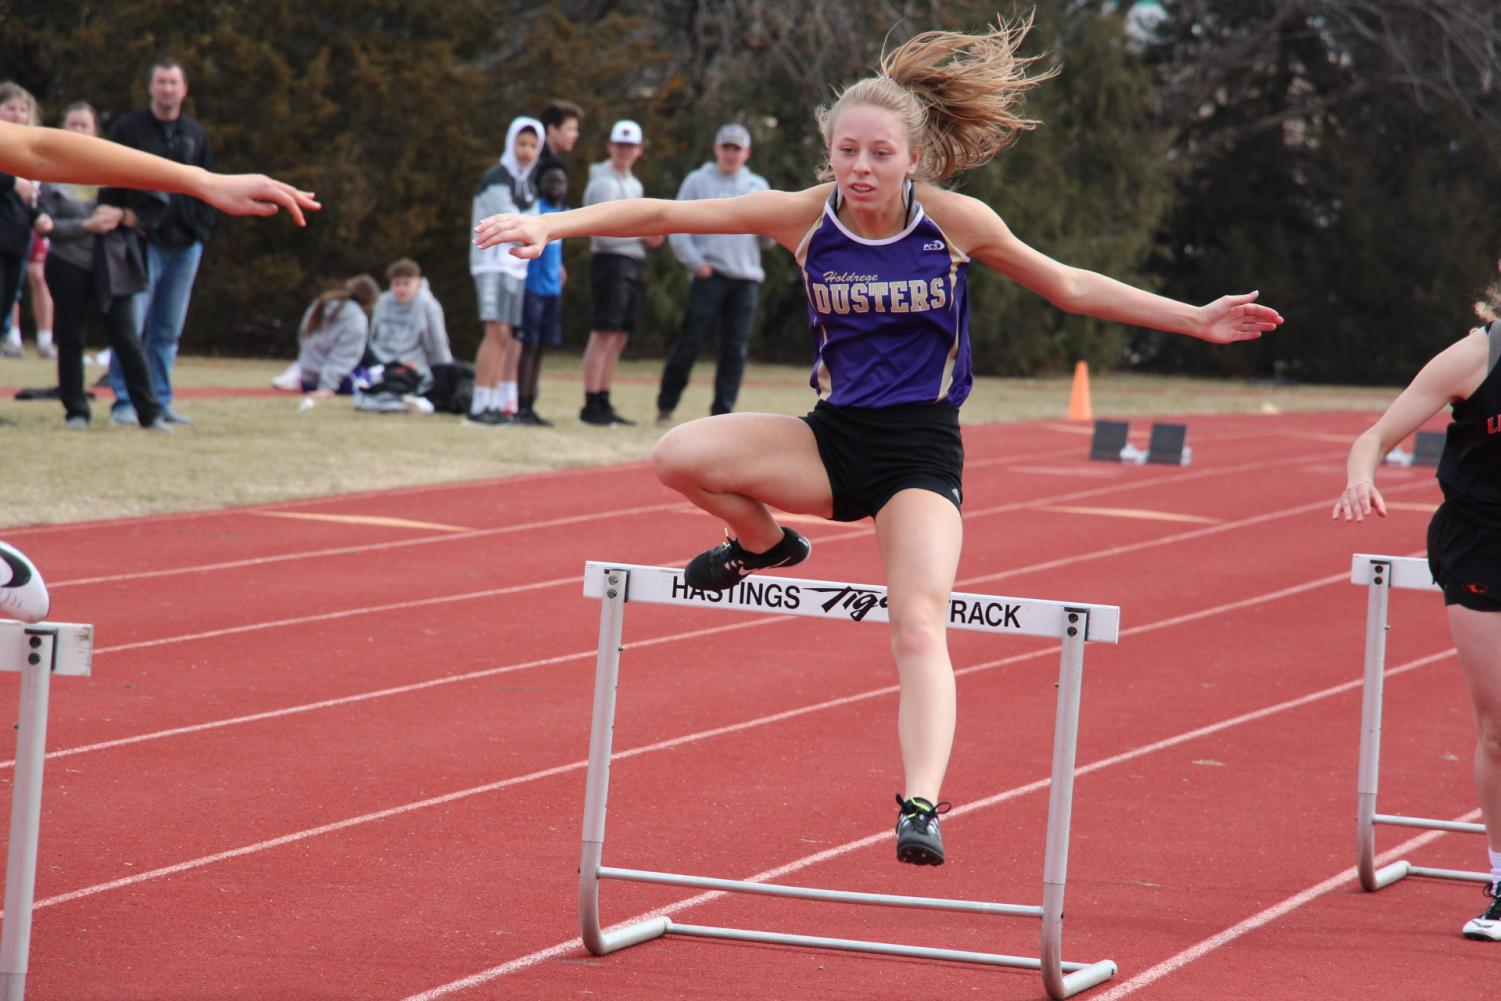 Senior Jenna Karn clears the first hurdle during the 300 Low Hurdles at the Hastings Invite.